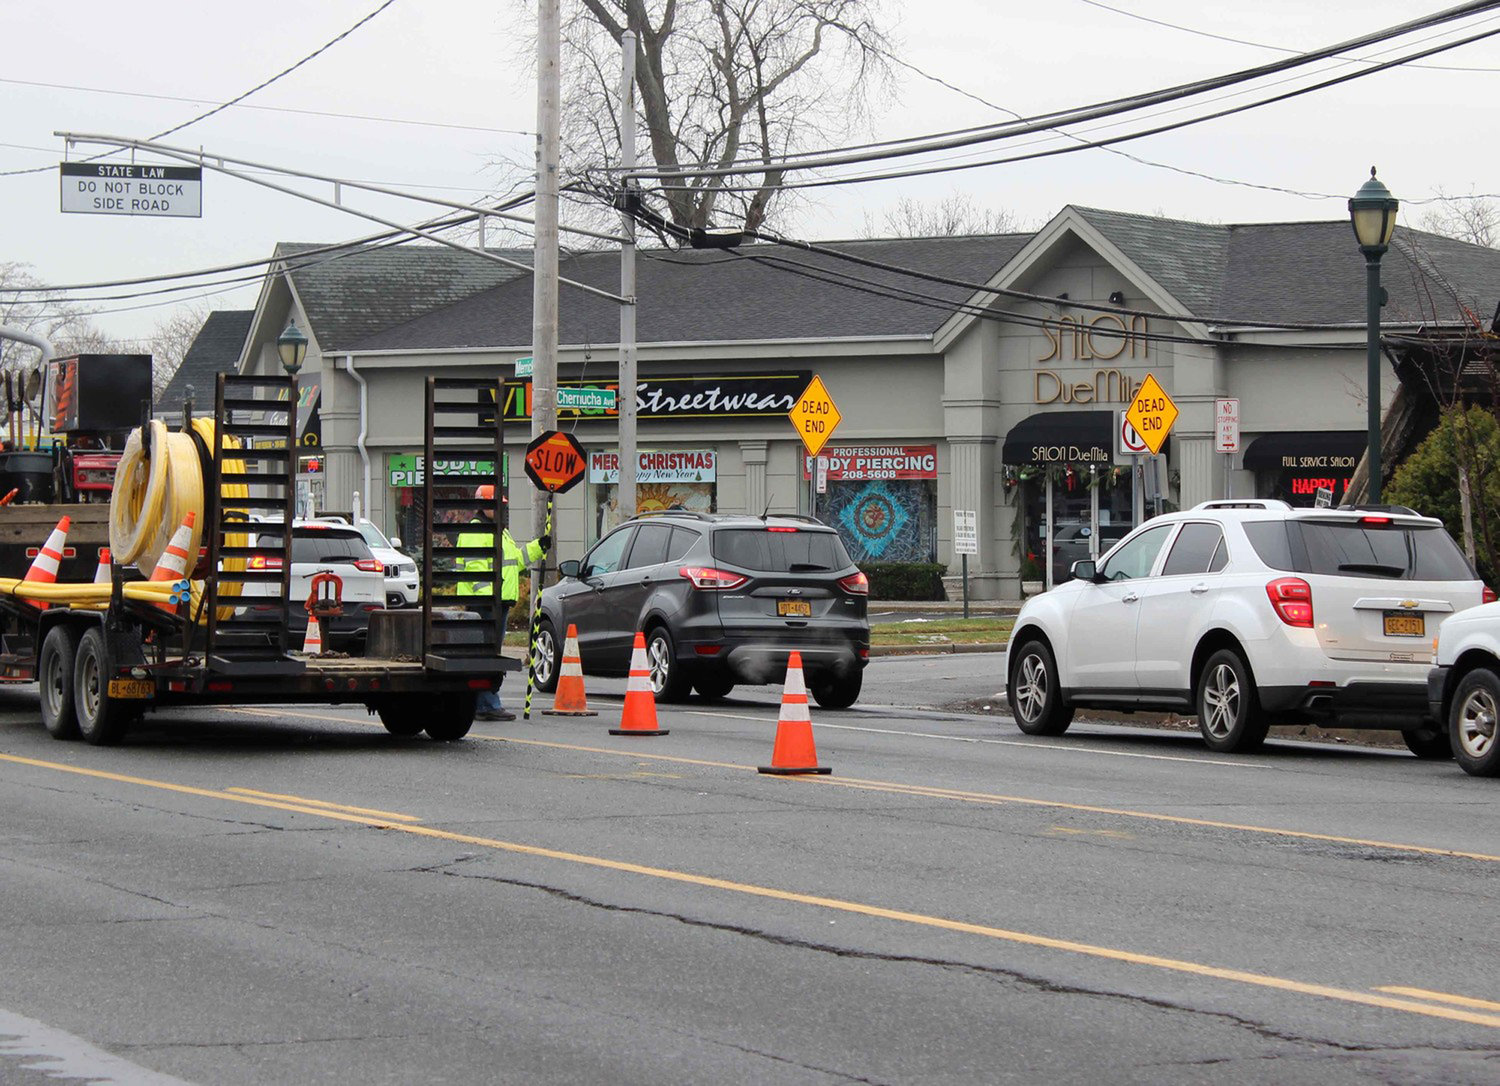 The Town of Hempstead voted a $40 million stimulus package on Tuesday to be used for road improvements.